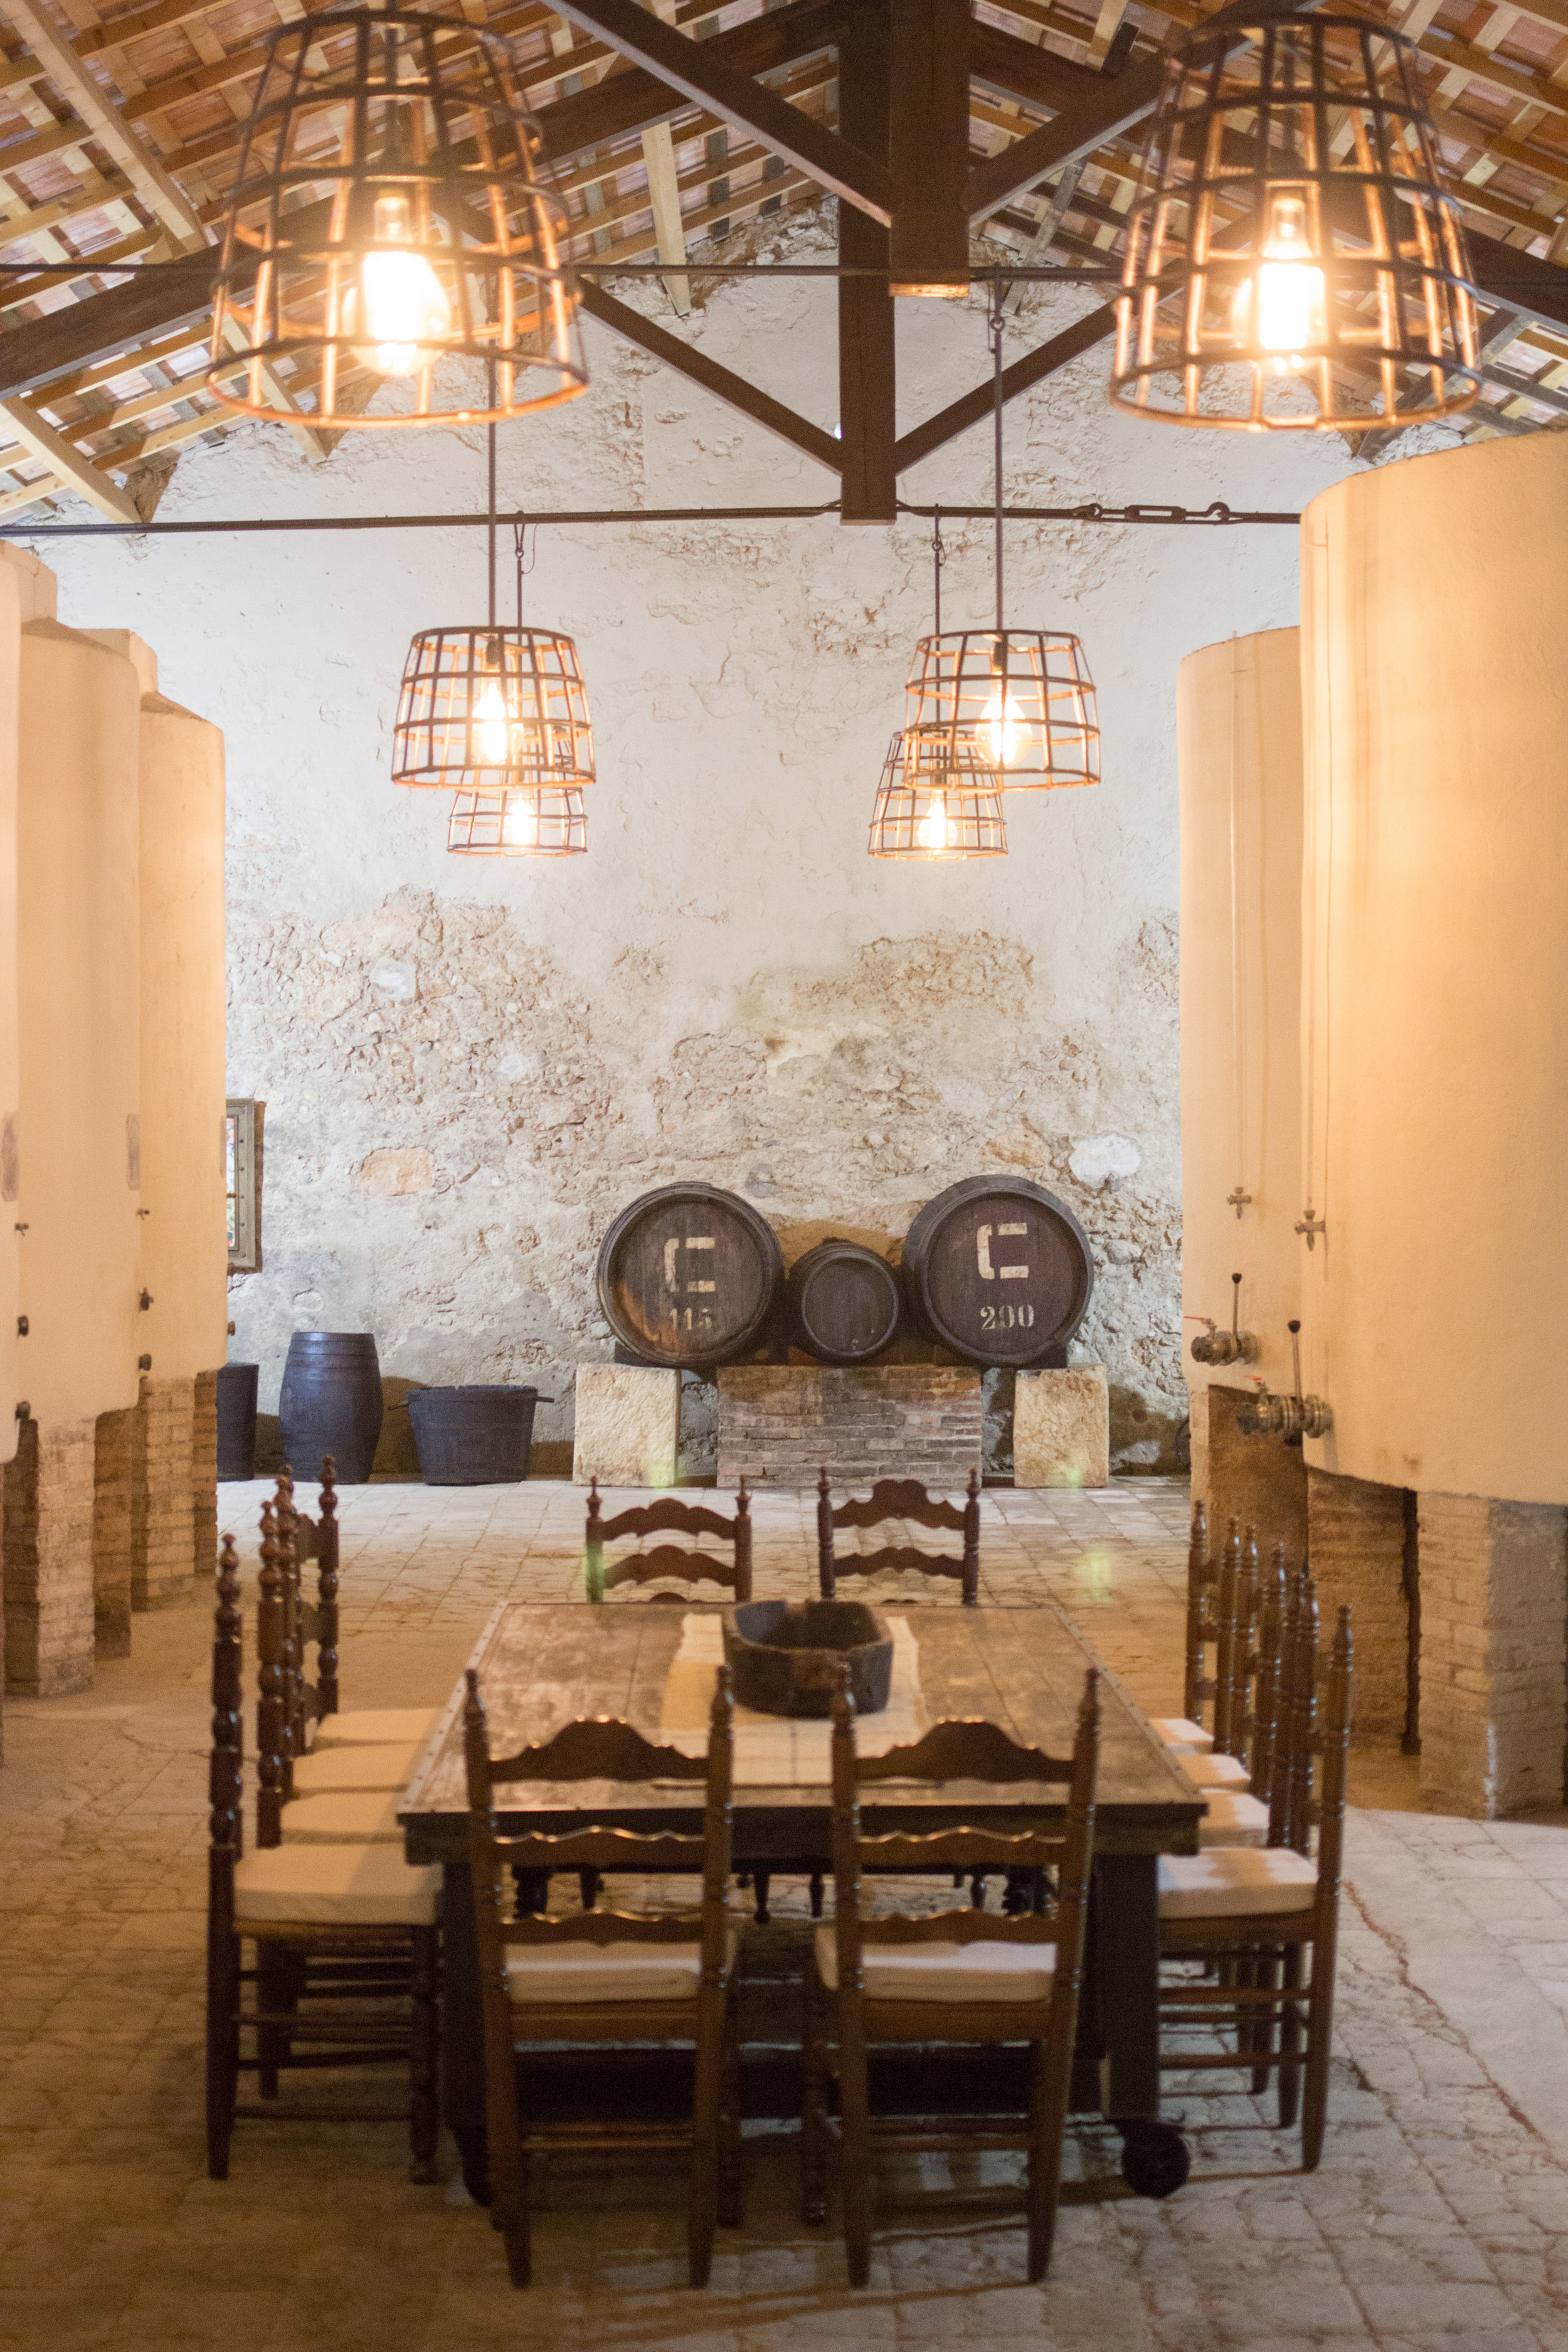 Design light fixtures, high ceiling, large cool space with a handmade upcycled table in the middle and vintage wine barrels in the background